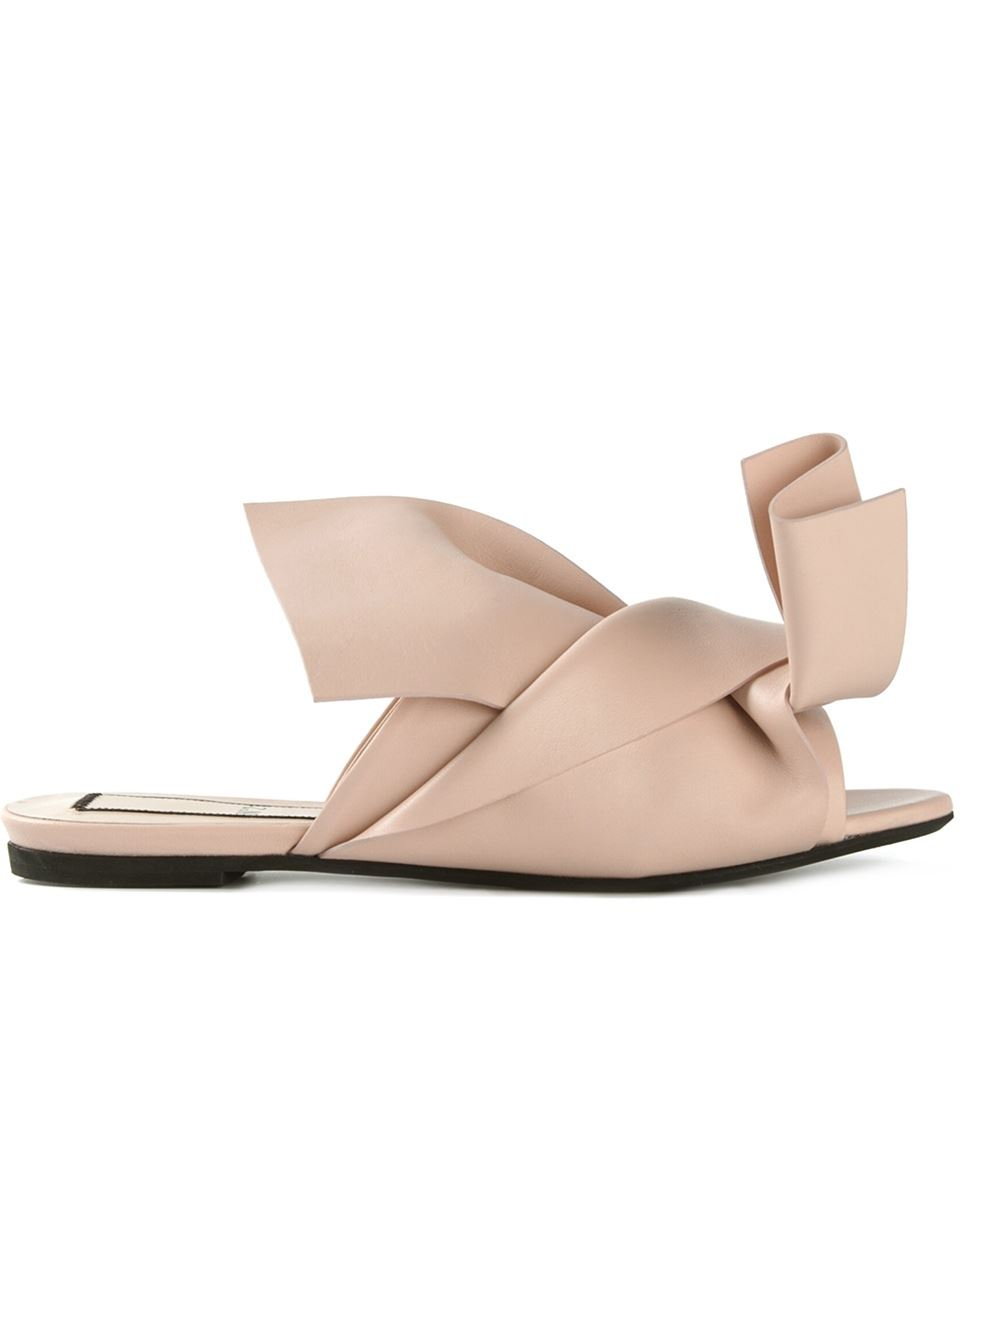 knotted bow mules - Nude & Neutrals N tMngQ8